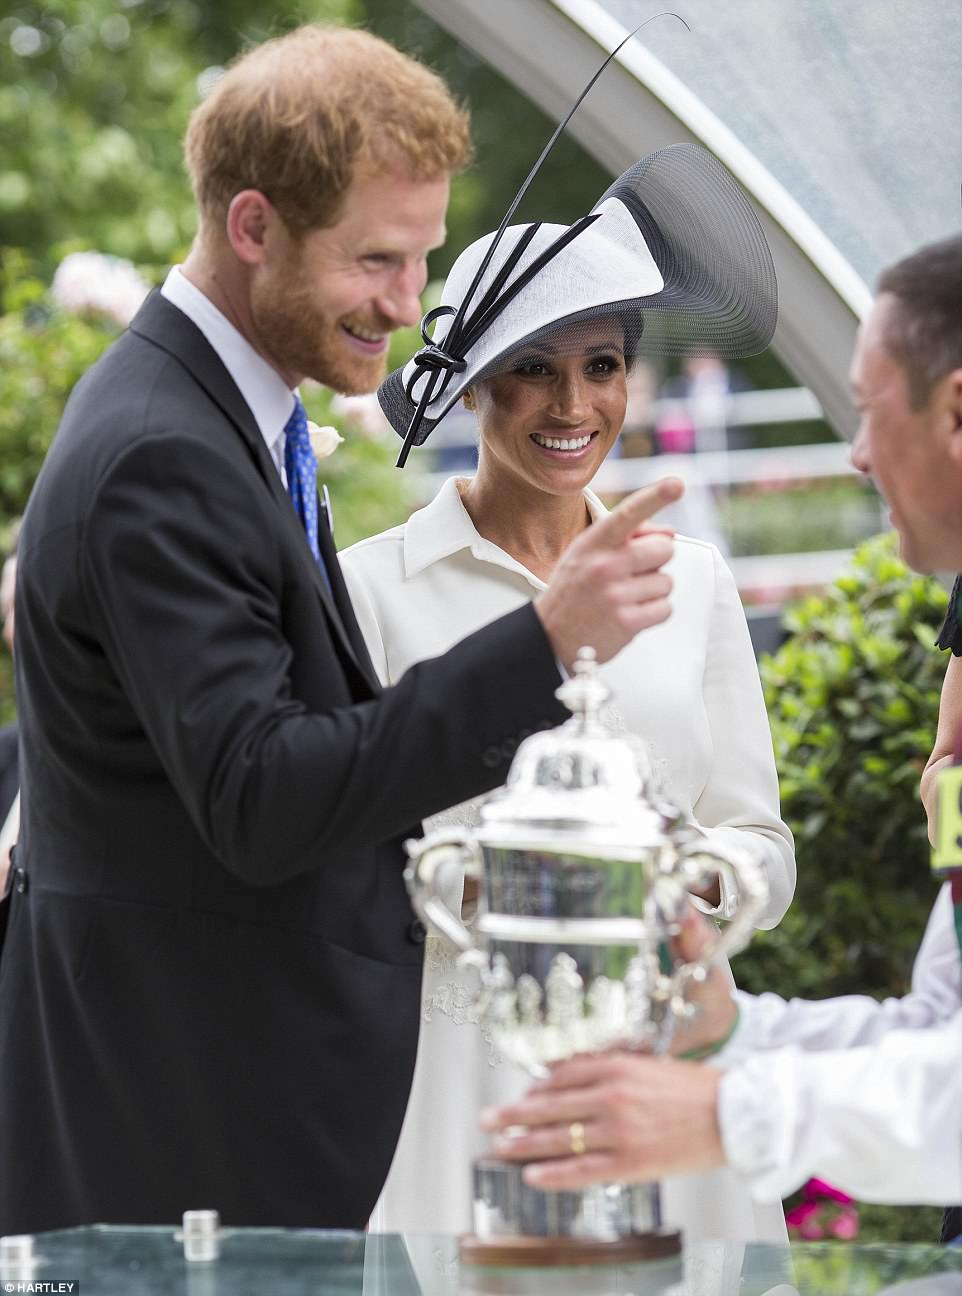 Prince Harry was snapped playfully wagging a finger at the jockey, who said Meghan 'giggled' when he told her his son would be pleased to know she had presented his trophy